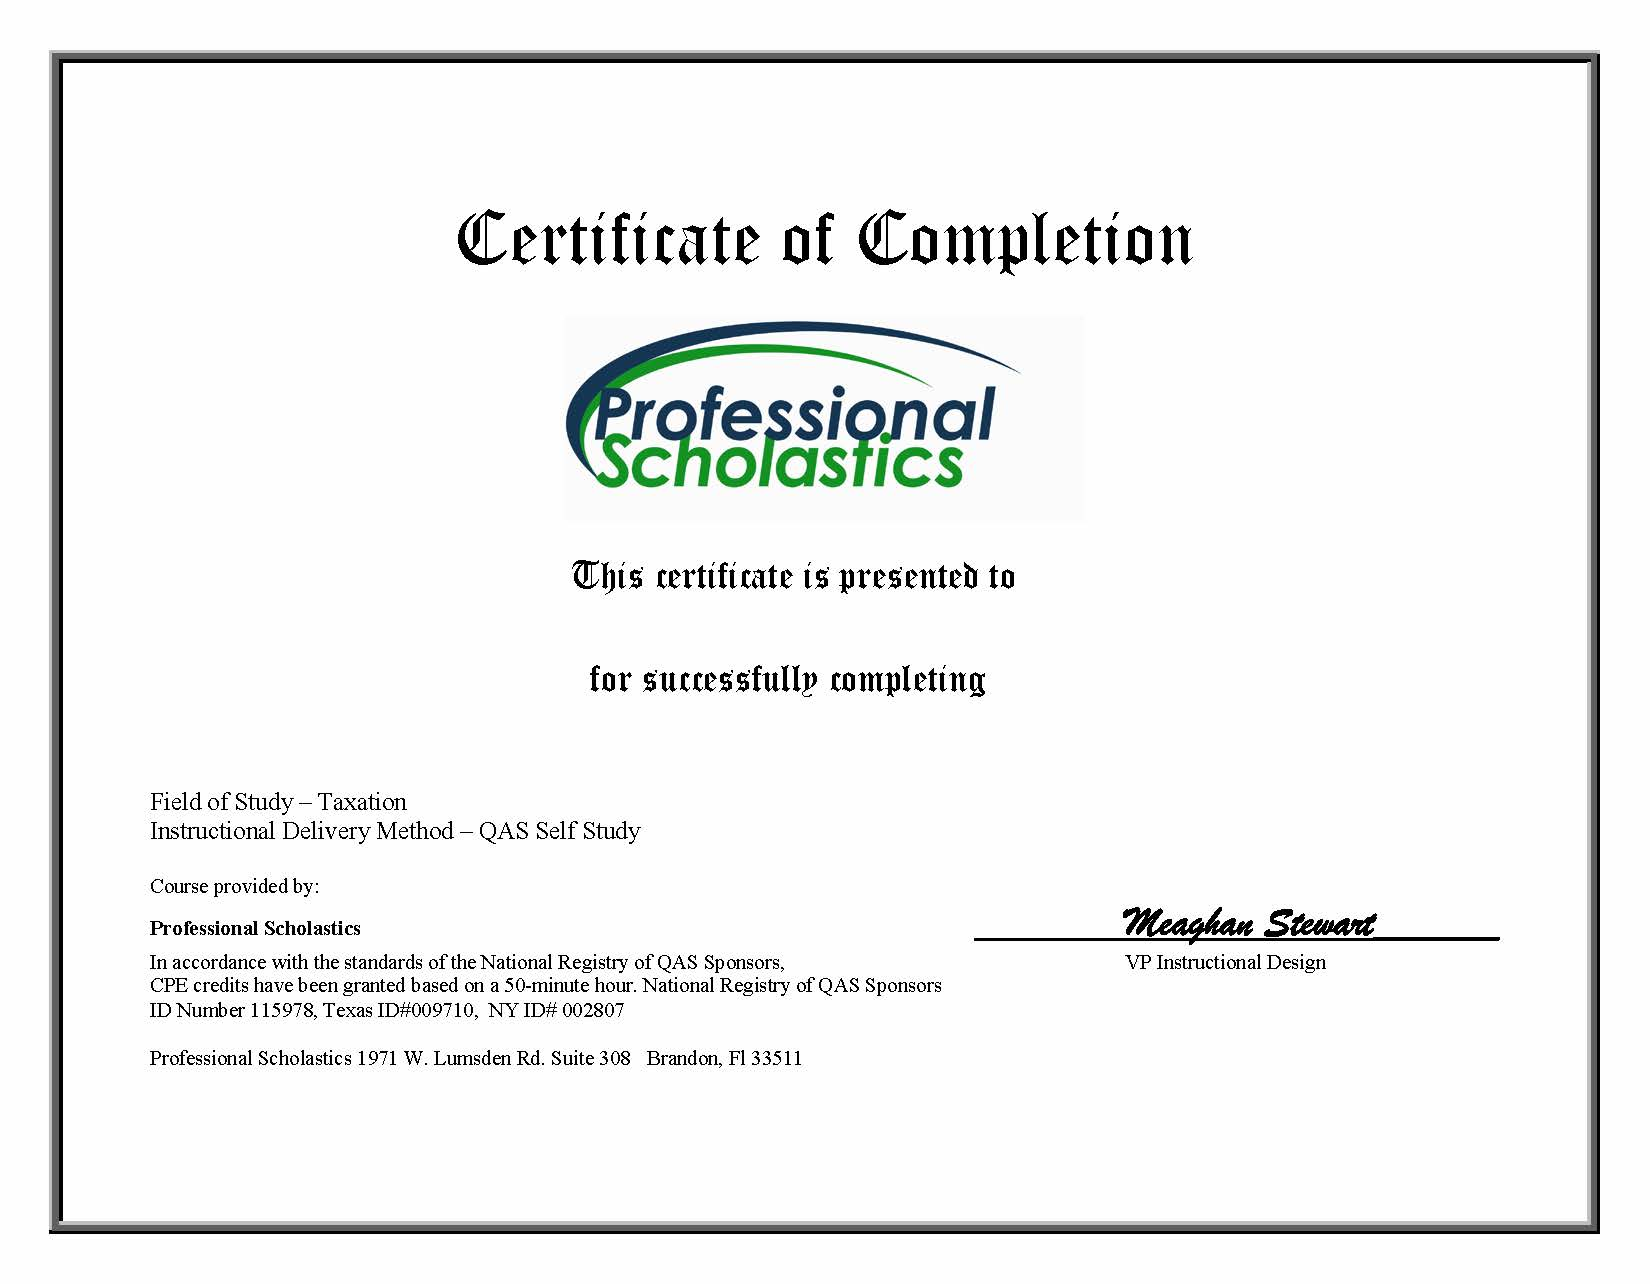 Cpecentral Partnership Taxation 24 Credit Tax Course 5050